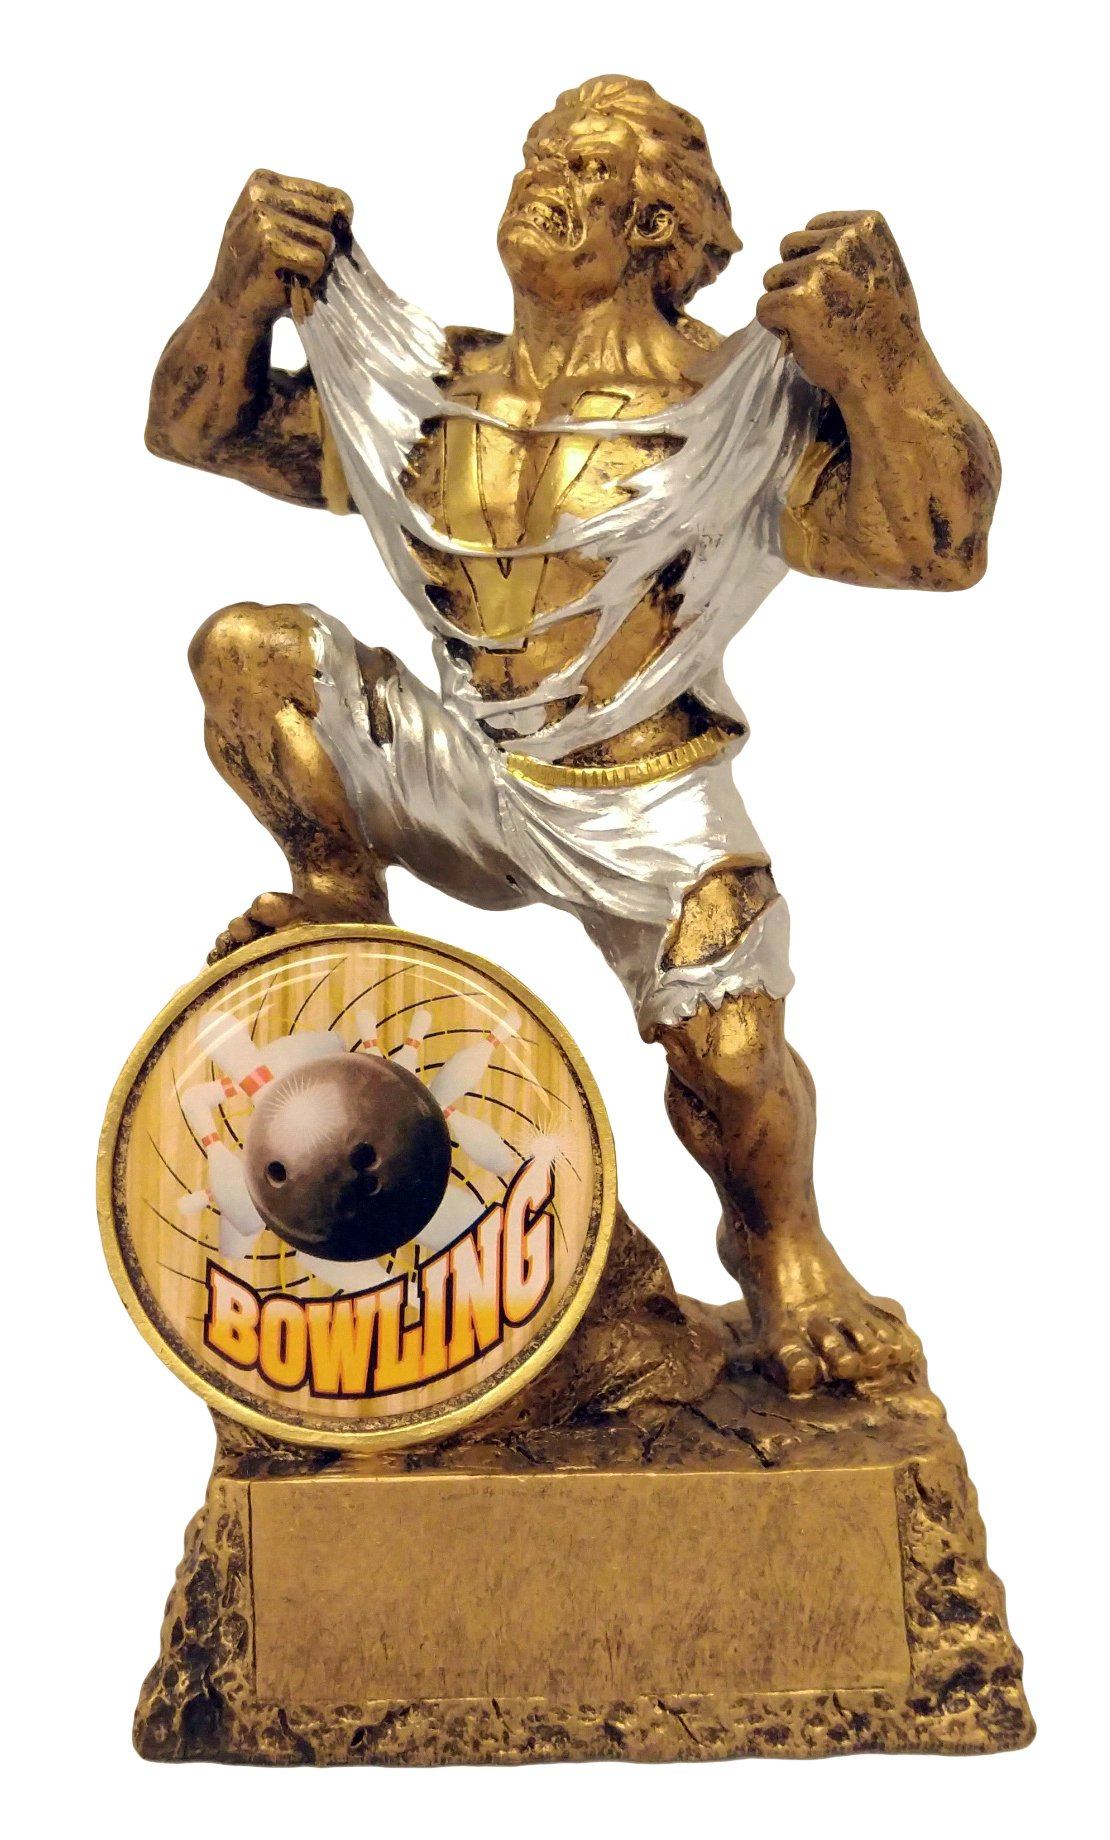 Decade Awards Bowling Monster Trophy | Bowler Hulk Award | 6.75 Inch - Free Engraved Plate on Request